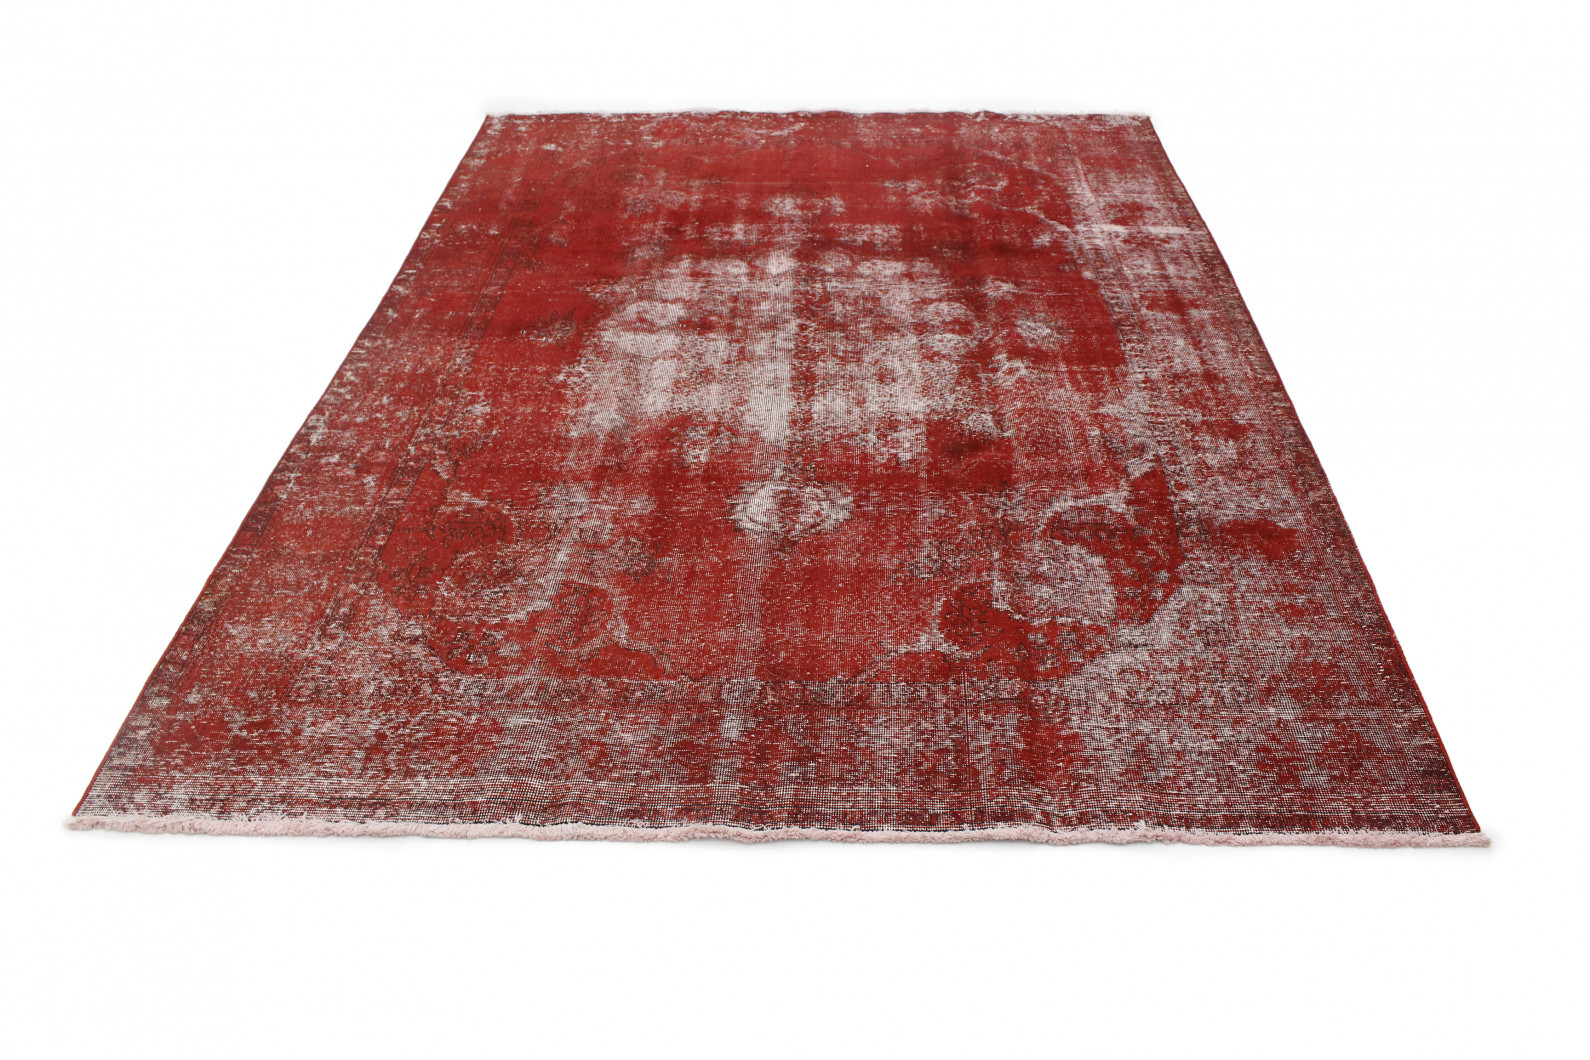 Vintage Teppich Rot in 330x240 (1 / 4)